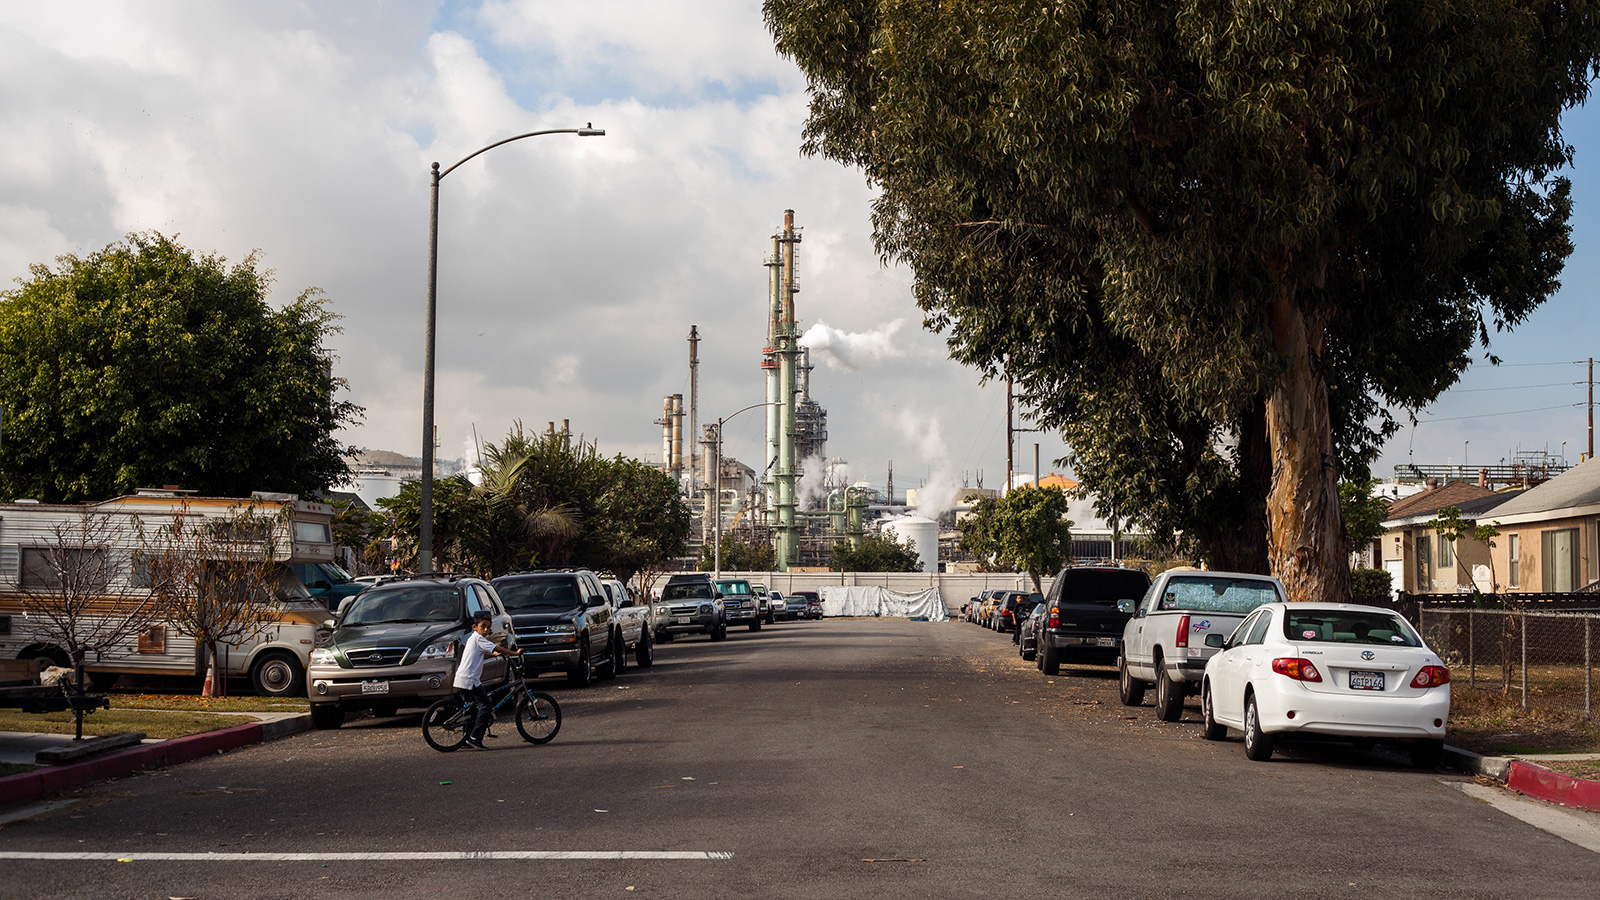 'Communion Los Angeles' casts the city's route 110 in a starring role